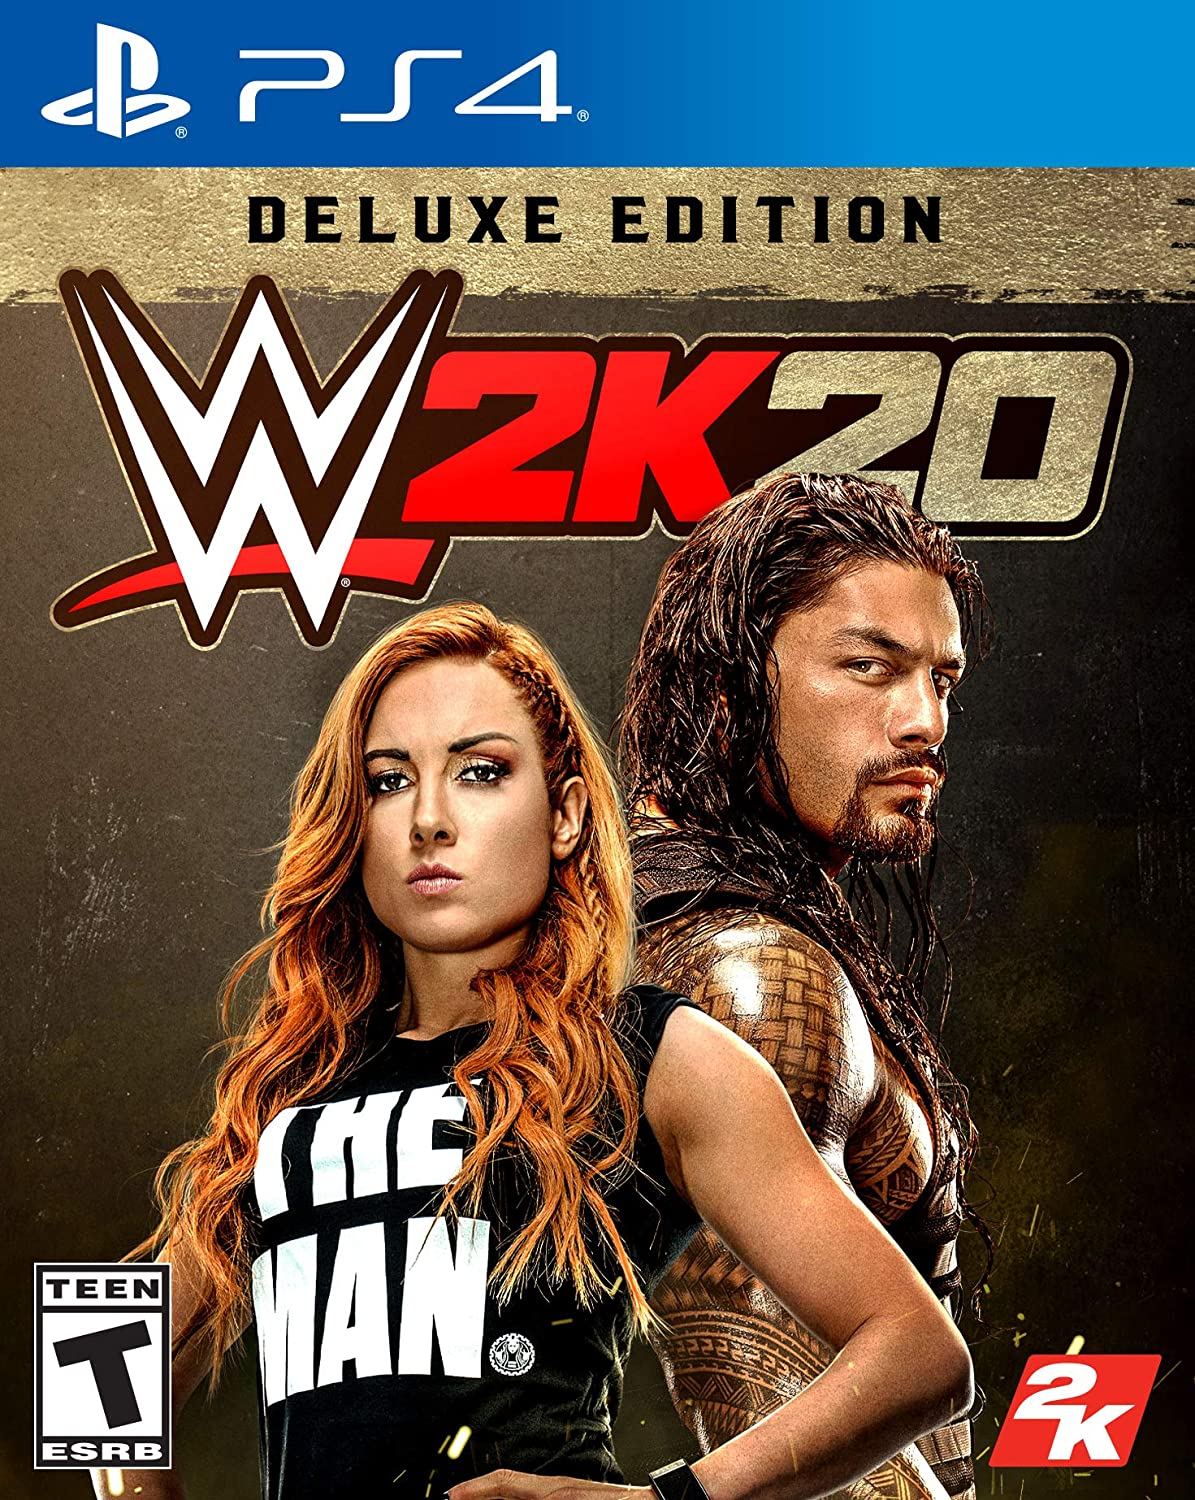 Over item handling New products, world's highest quality popular! WWE 2K20 Deluxe Playstation Edition 4